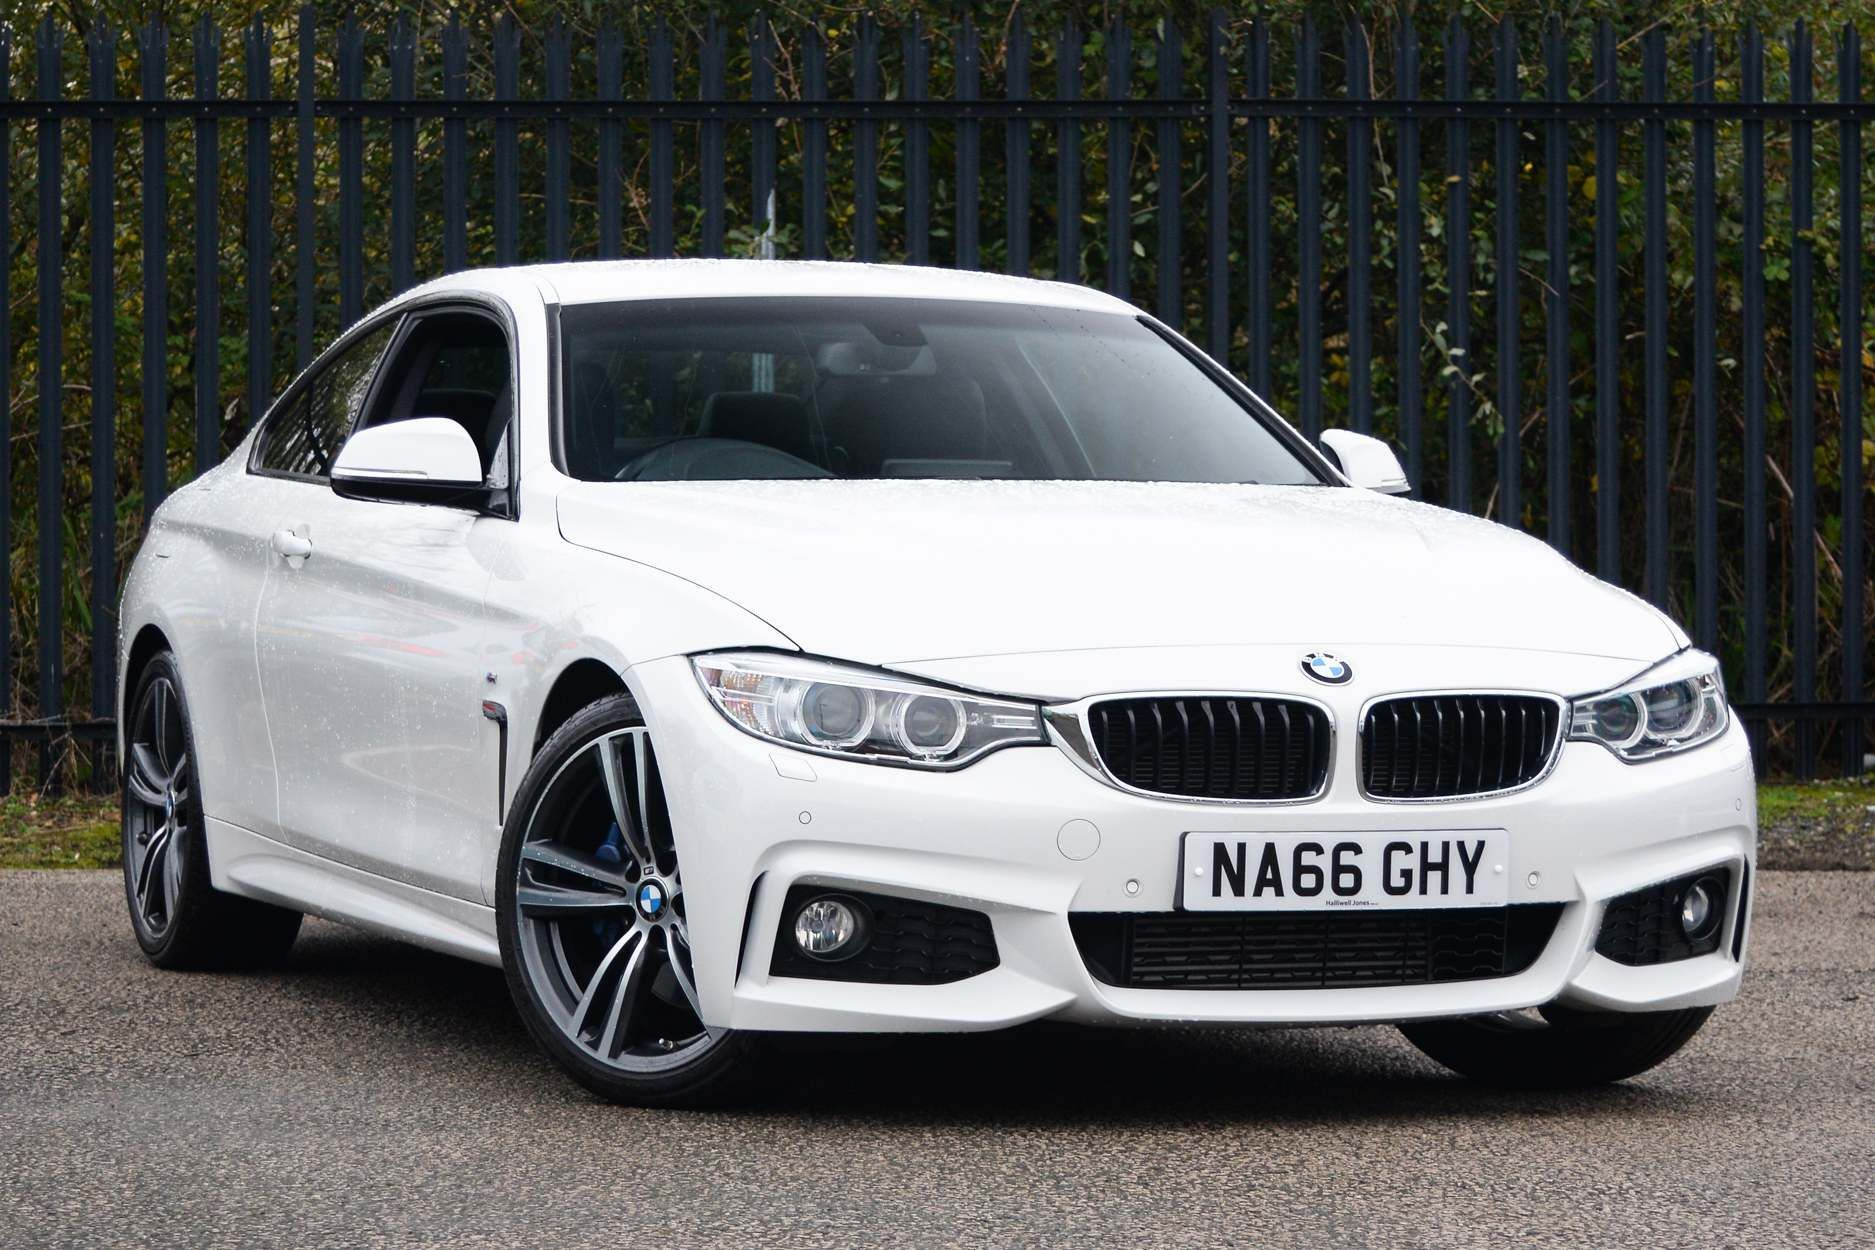 Image 1 - BMW 420d M Sport Coupe (NA66GHY)